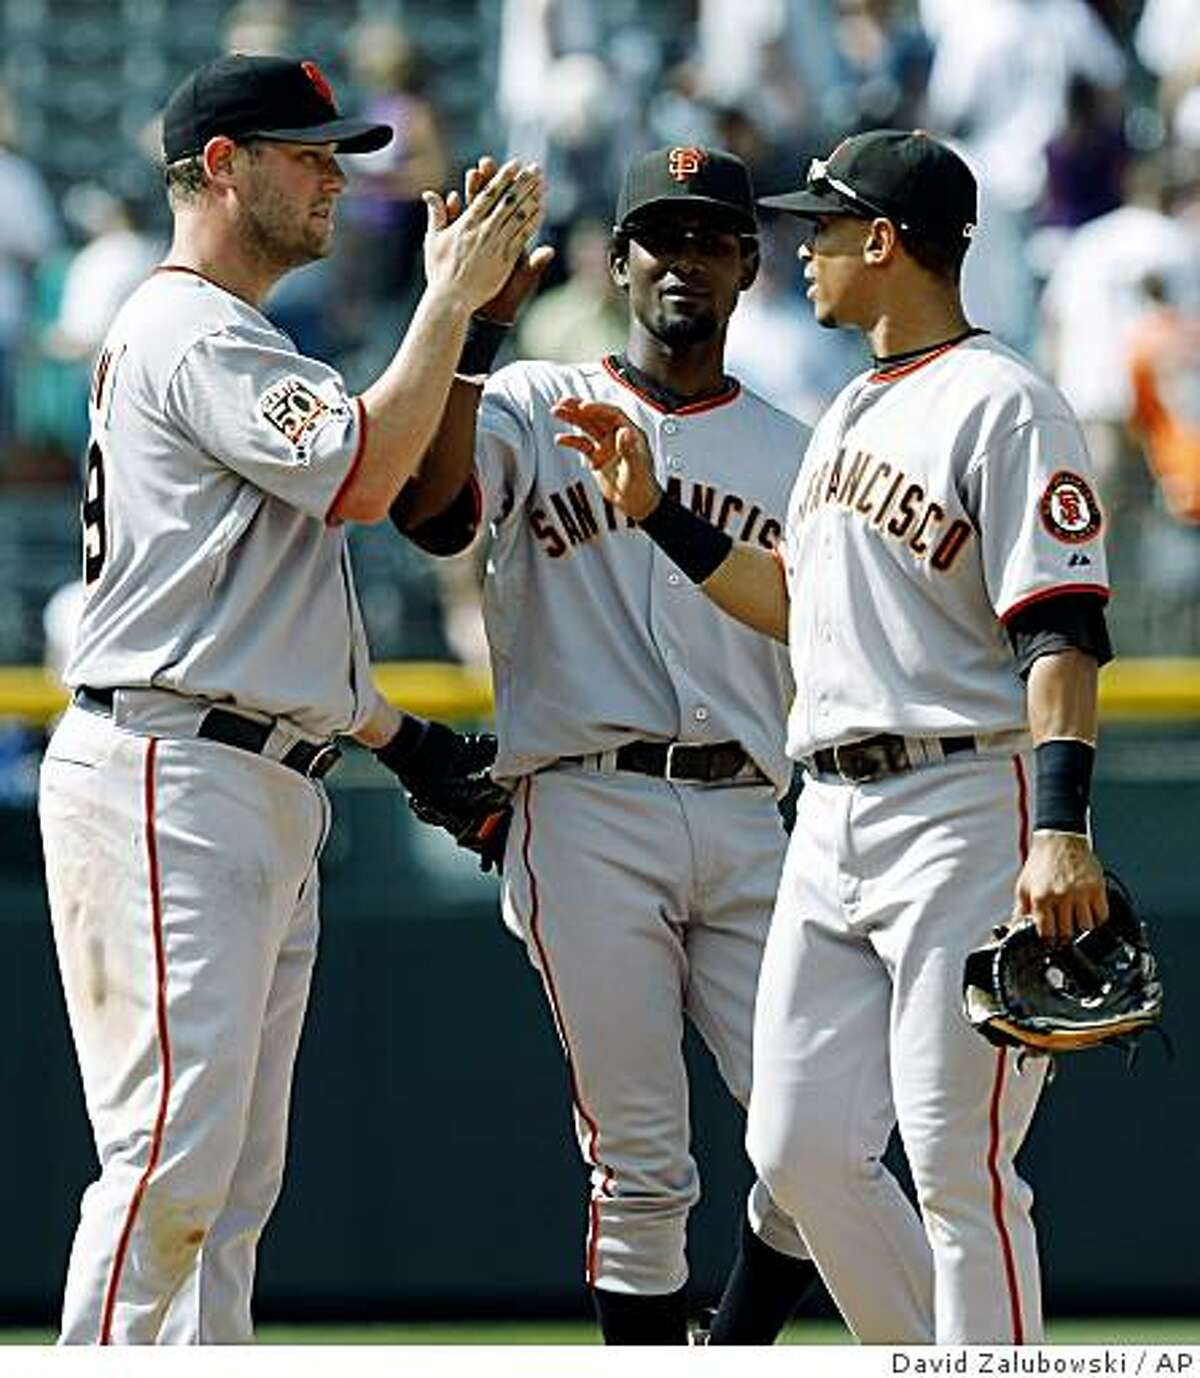 San Francisco Giants third baseman Scott McClain, left, is congratulated by second baseman Eugenio Velez, center, and shortstop Emmanuel Burriss after the Giants' 9-2 victory over the Colorado Rockies in a baseball game in Denver on Wednesday, Sept. 3, 2008. McClain collected three hits and drove in three runs to lead the Giants to the win. (AP Photo/David Zalubowski)